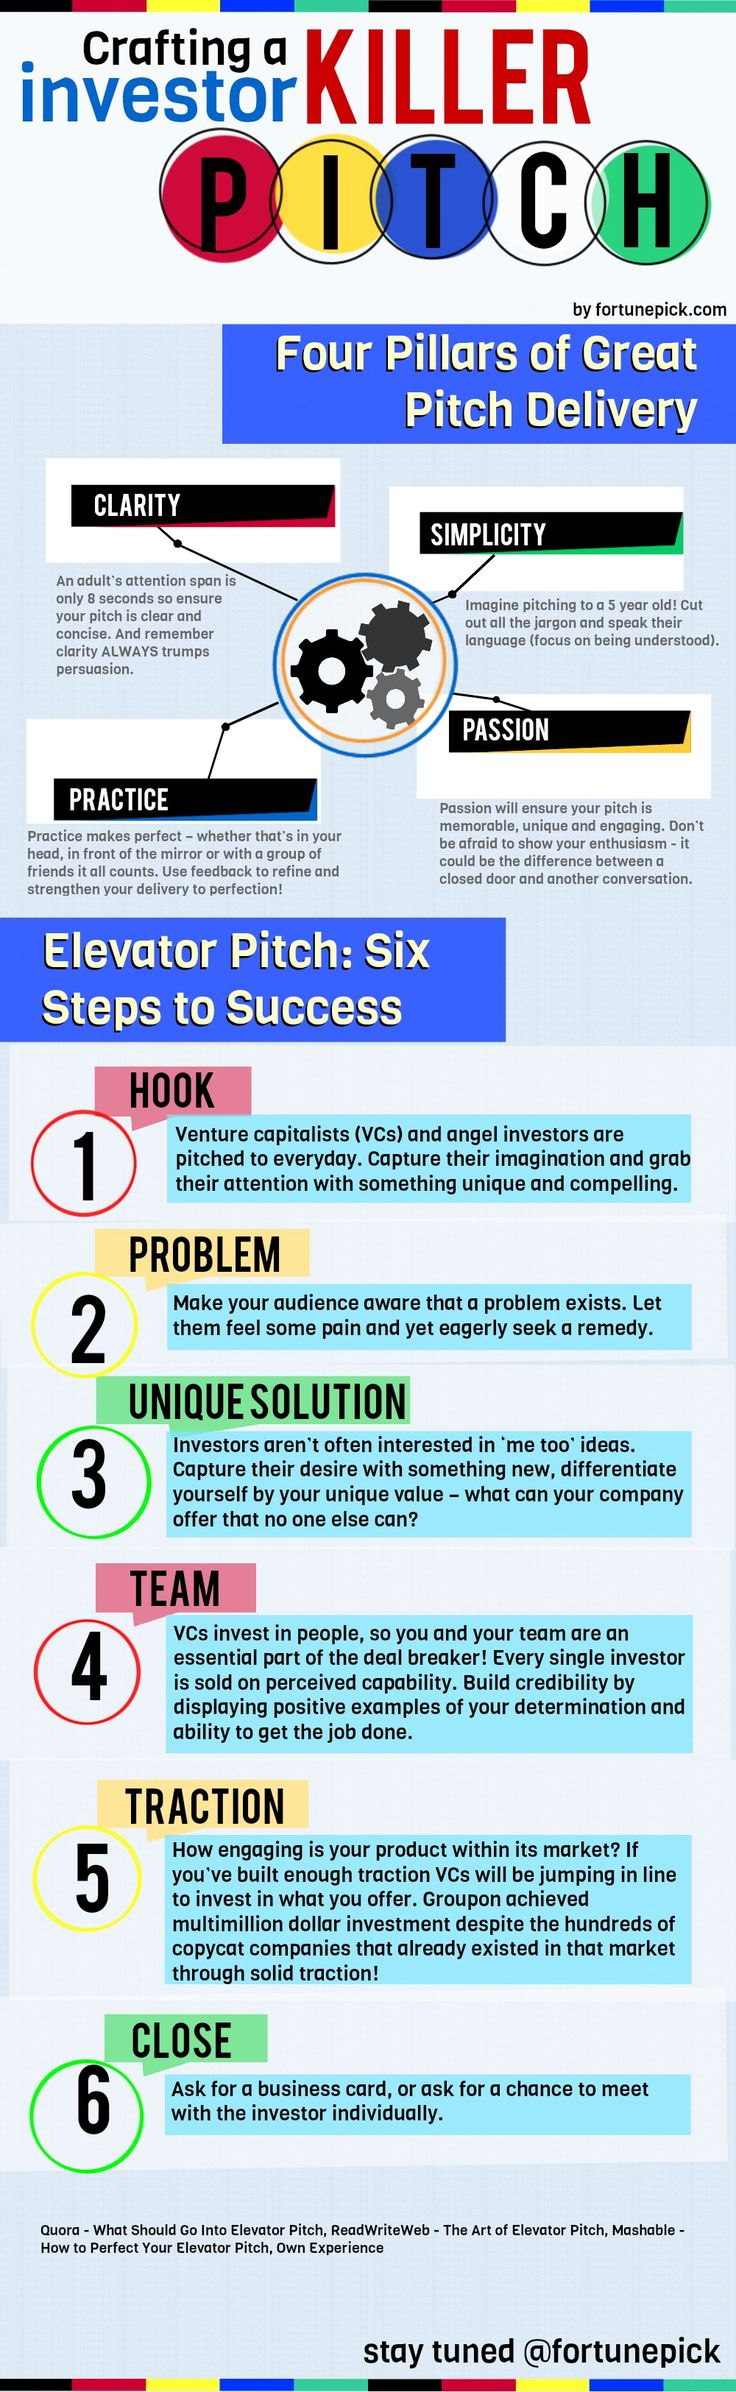 Crafting A Killer Investor Pitch  Good information  if you are looking for funding says: abracadabrasocialmedia.com